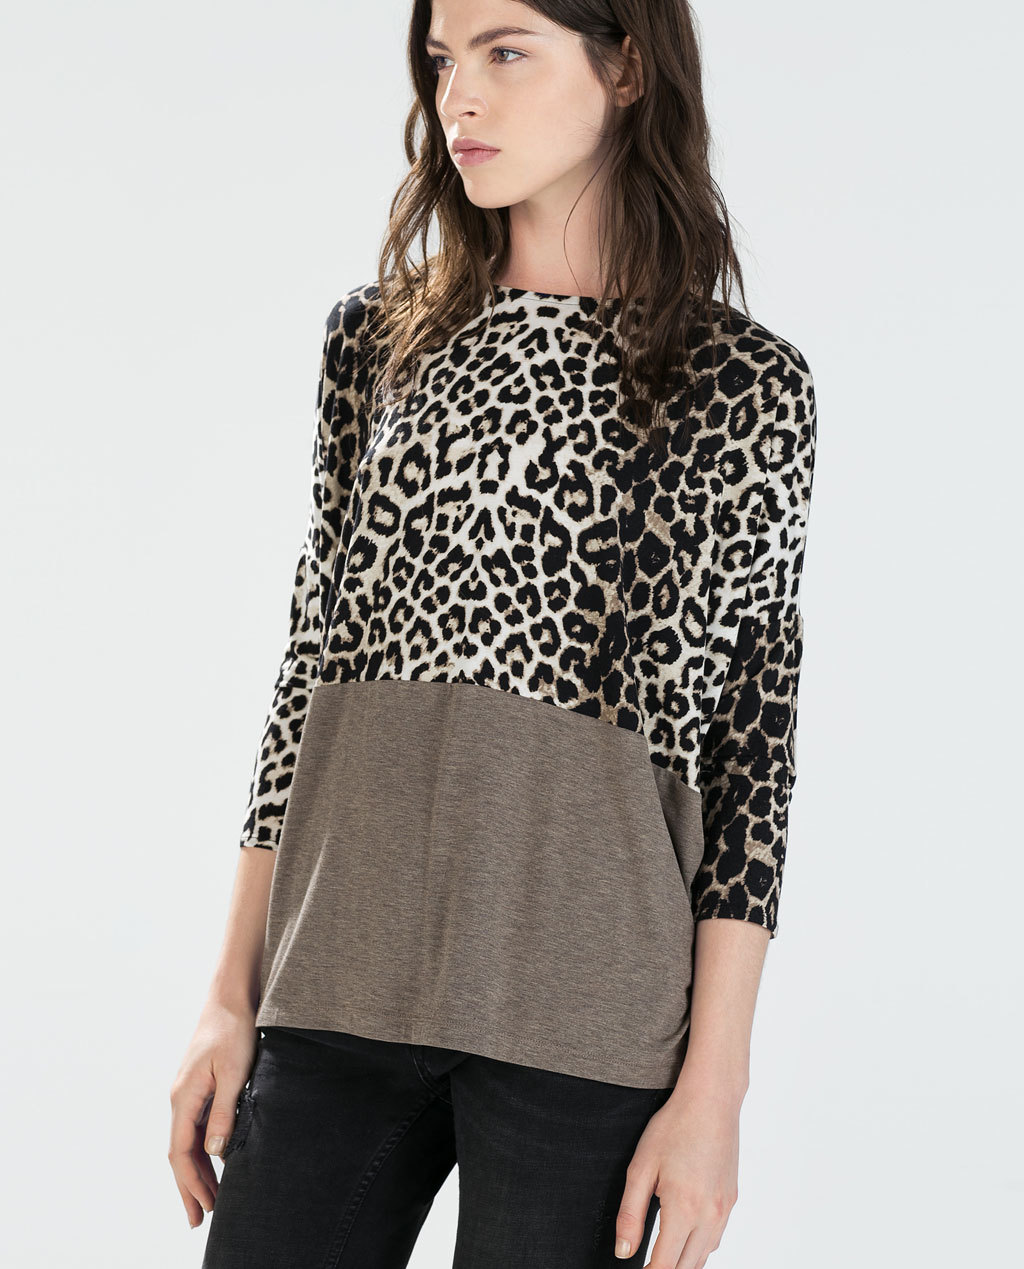 3/4 Sleeve T Shirt - sleeve style: dolman/batwing; style: t-shirt; predominant colour: camel; secondary colour: black; occasions: casual, creative work; length: standard; fit: loose; neckline: crew; sleeve length: 3/4 length; pattern type: fabric; pattern size: standard; pattern: animal print; texture group: jersey - stretchy/drapey; season: a/w 2014